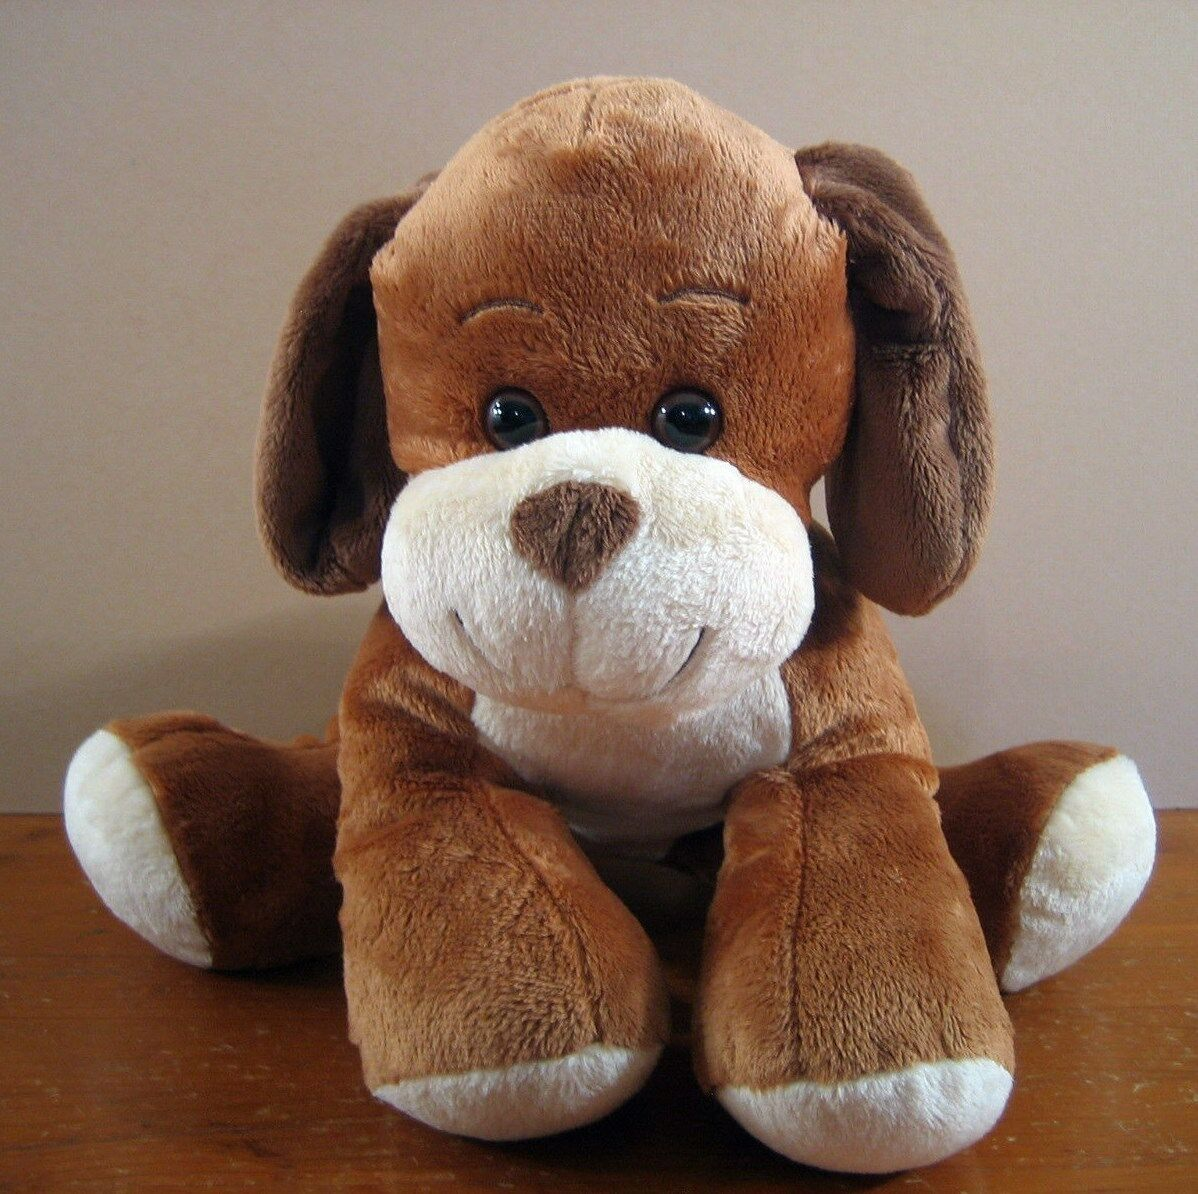 Puppy Dog Build A Bear 2010 2010 2010 Brown Tan Soft needs repair in seam on top 444f87